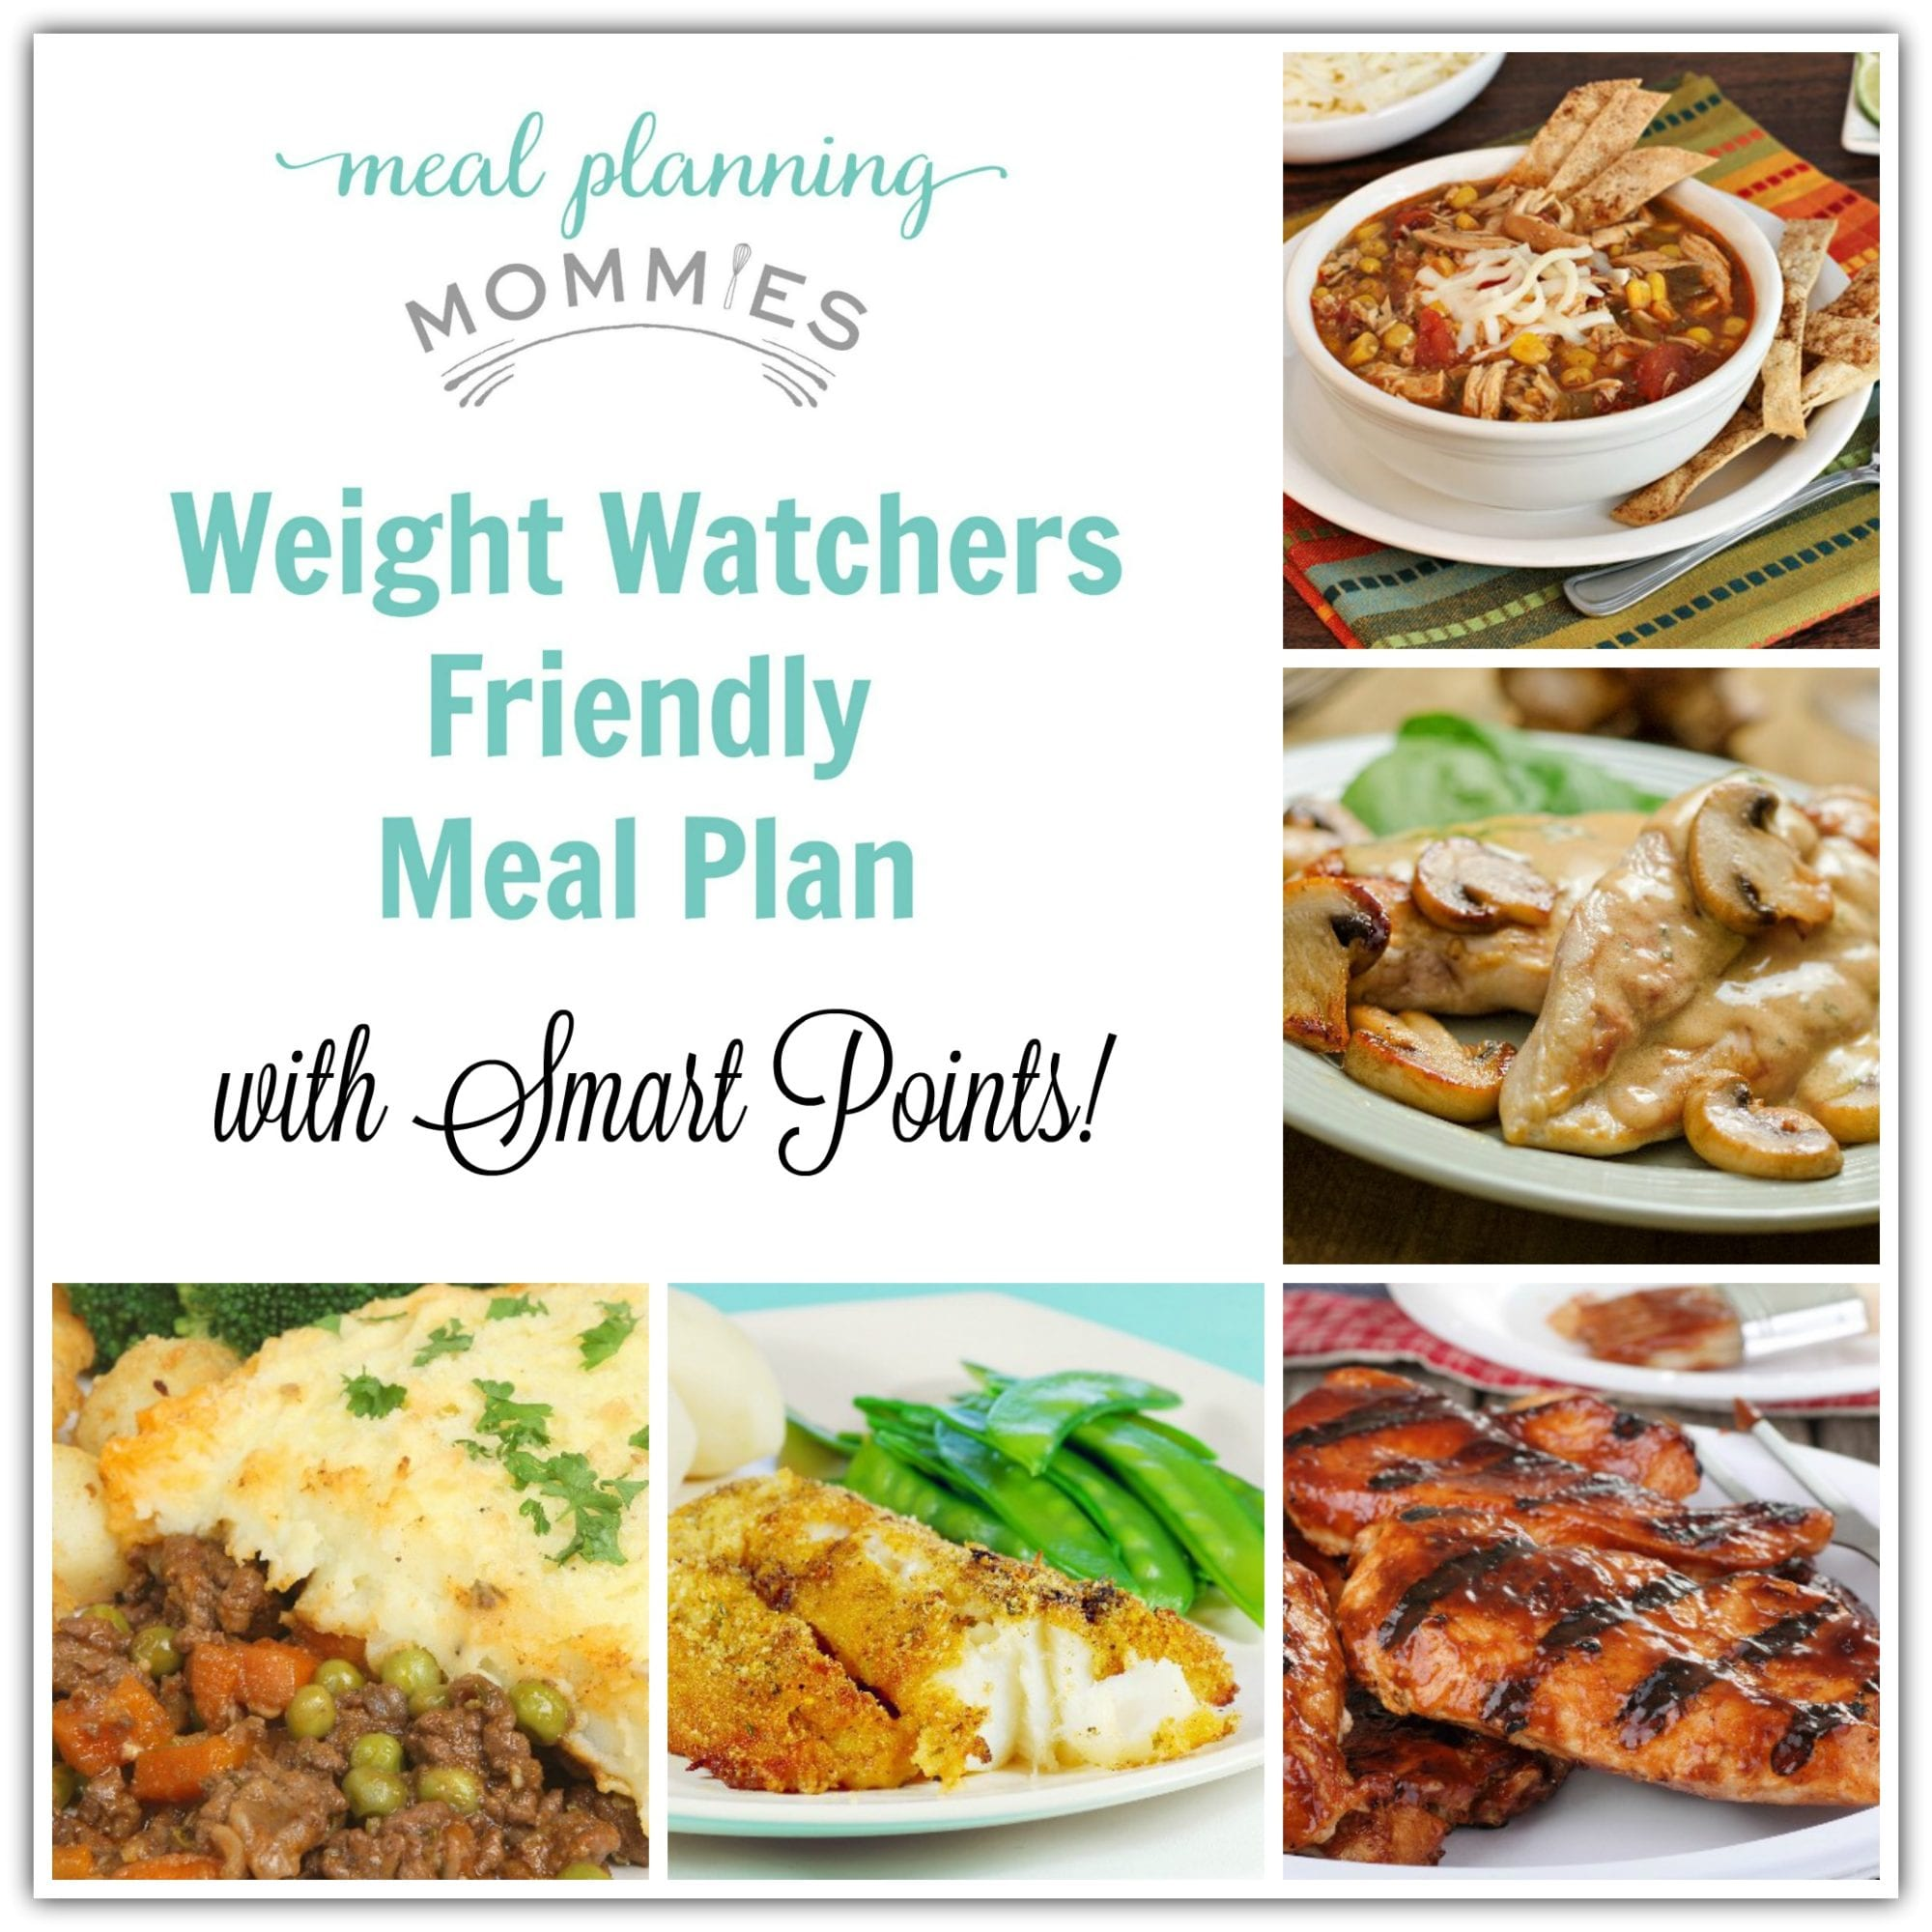 Weight Watcher Friendly Meal Plan With Smart Points 2